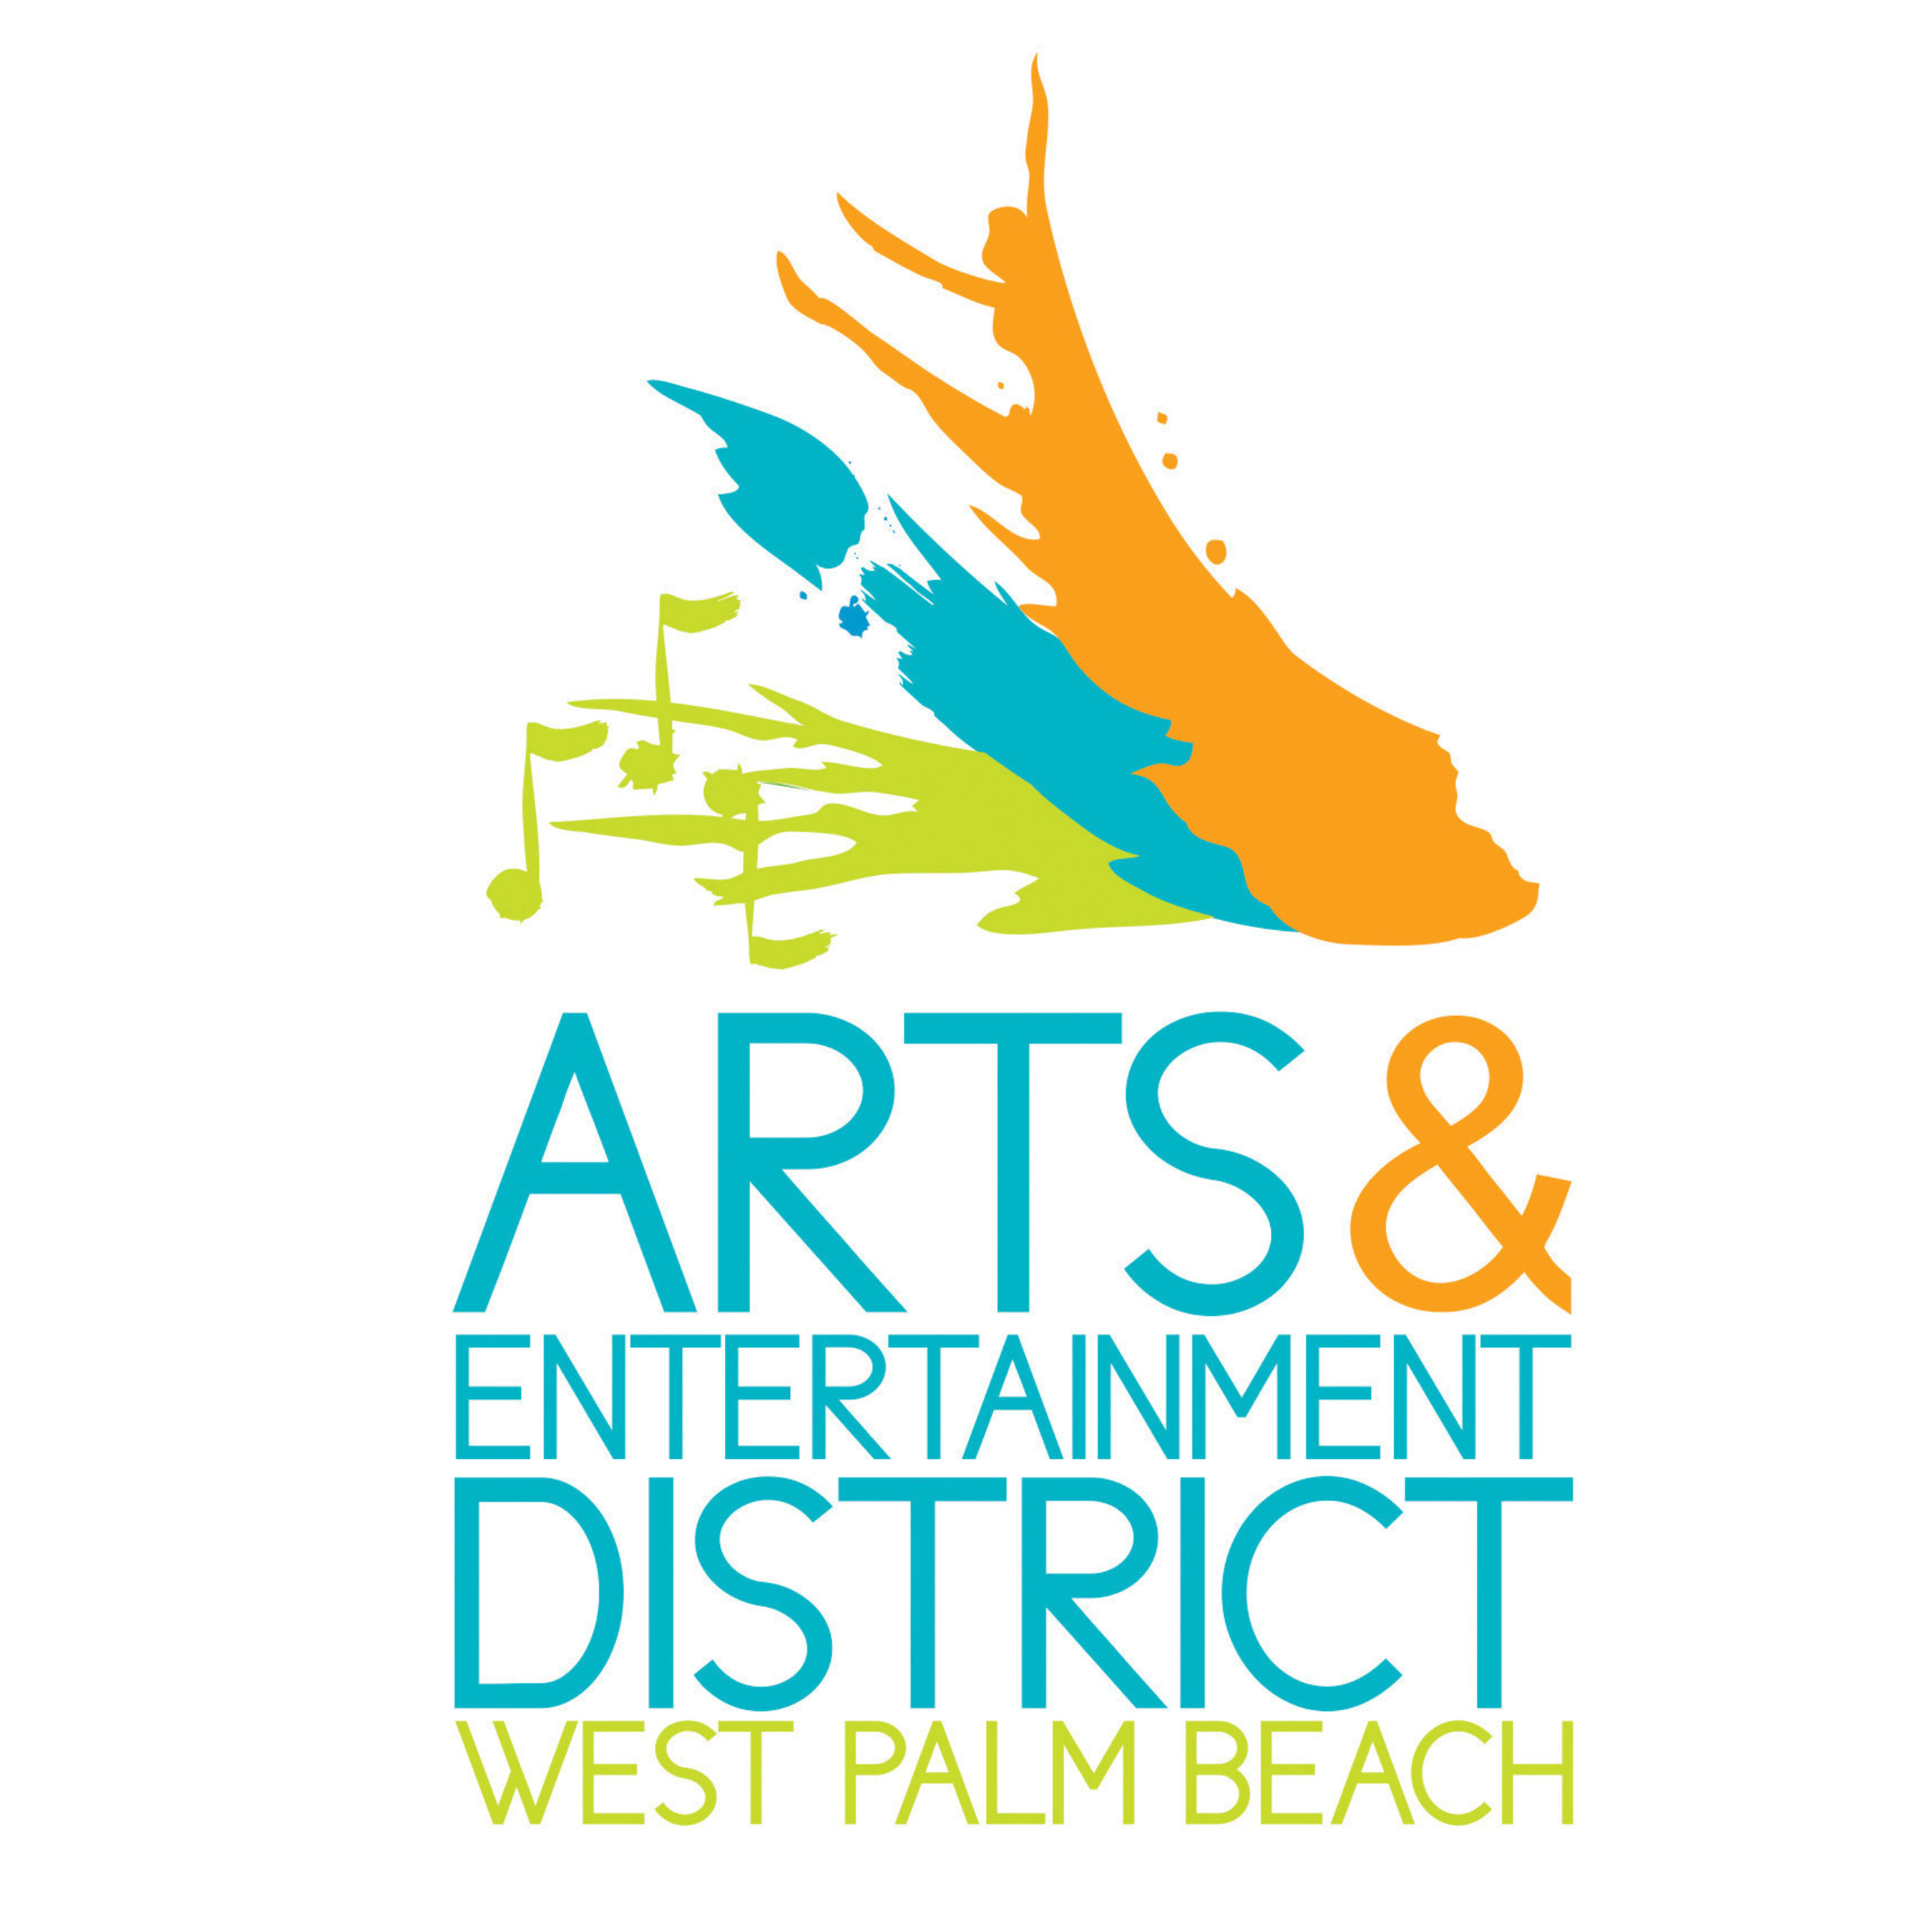 About the West Palm Beach Arts & Entertainment District: The West Palm Beach A&E District is a centralized collection of inspiring arts and entertainment venues; art and history museums; galleries; libraries; performing arts companies; and art education institutions. Situated in the heart of South Florida's most progressive city, the District includes more than 20 distinct and distinguished cultural destinations that form a defining industry cluster. The A&E District enhances the appeal of West Palm Beach as a visitor destination, drawing attention to its status as a vibrant city illuminated by its beauty and range of creative expression. A free trolley dedicated to connecting partners makes getting around the District easy and enjoyable.